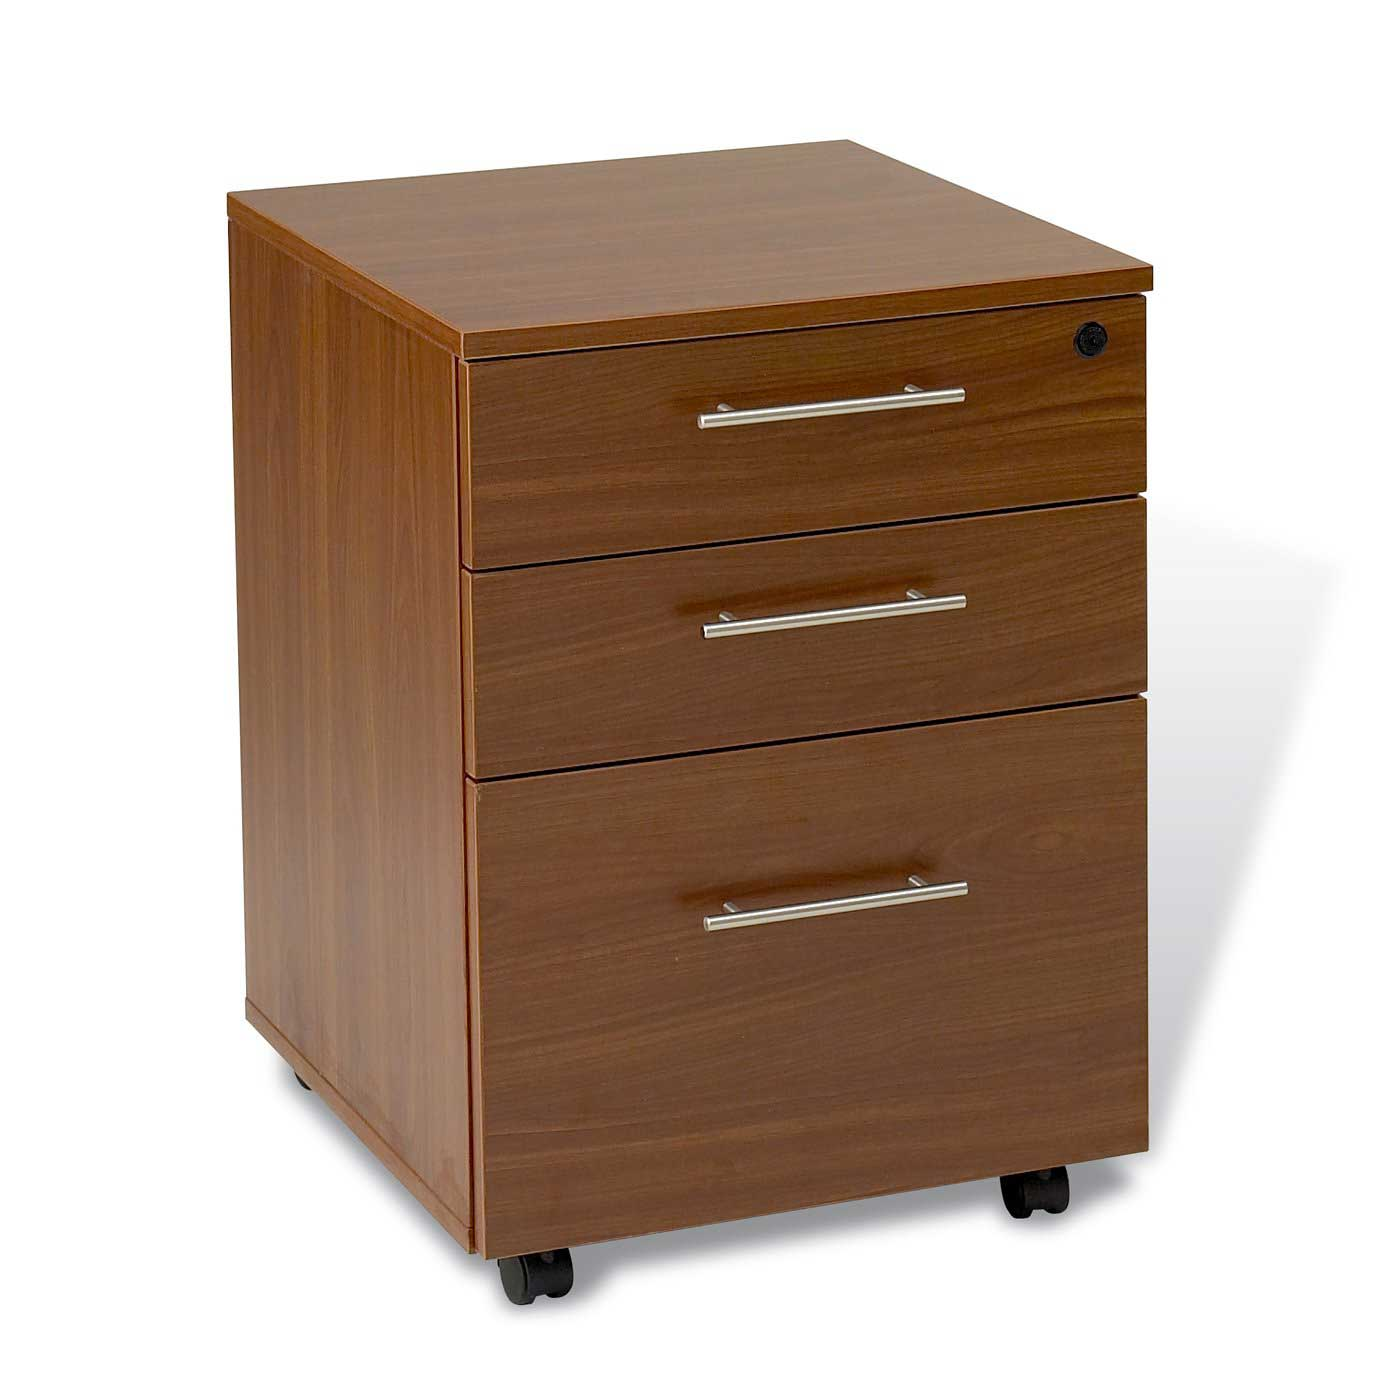 Picture of: Ergo filing cabinets